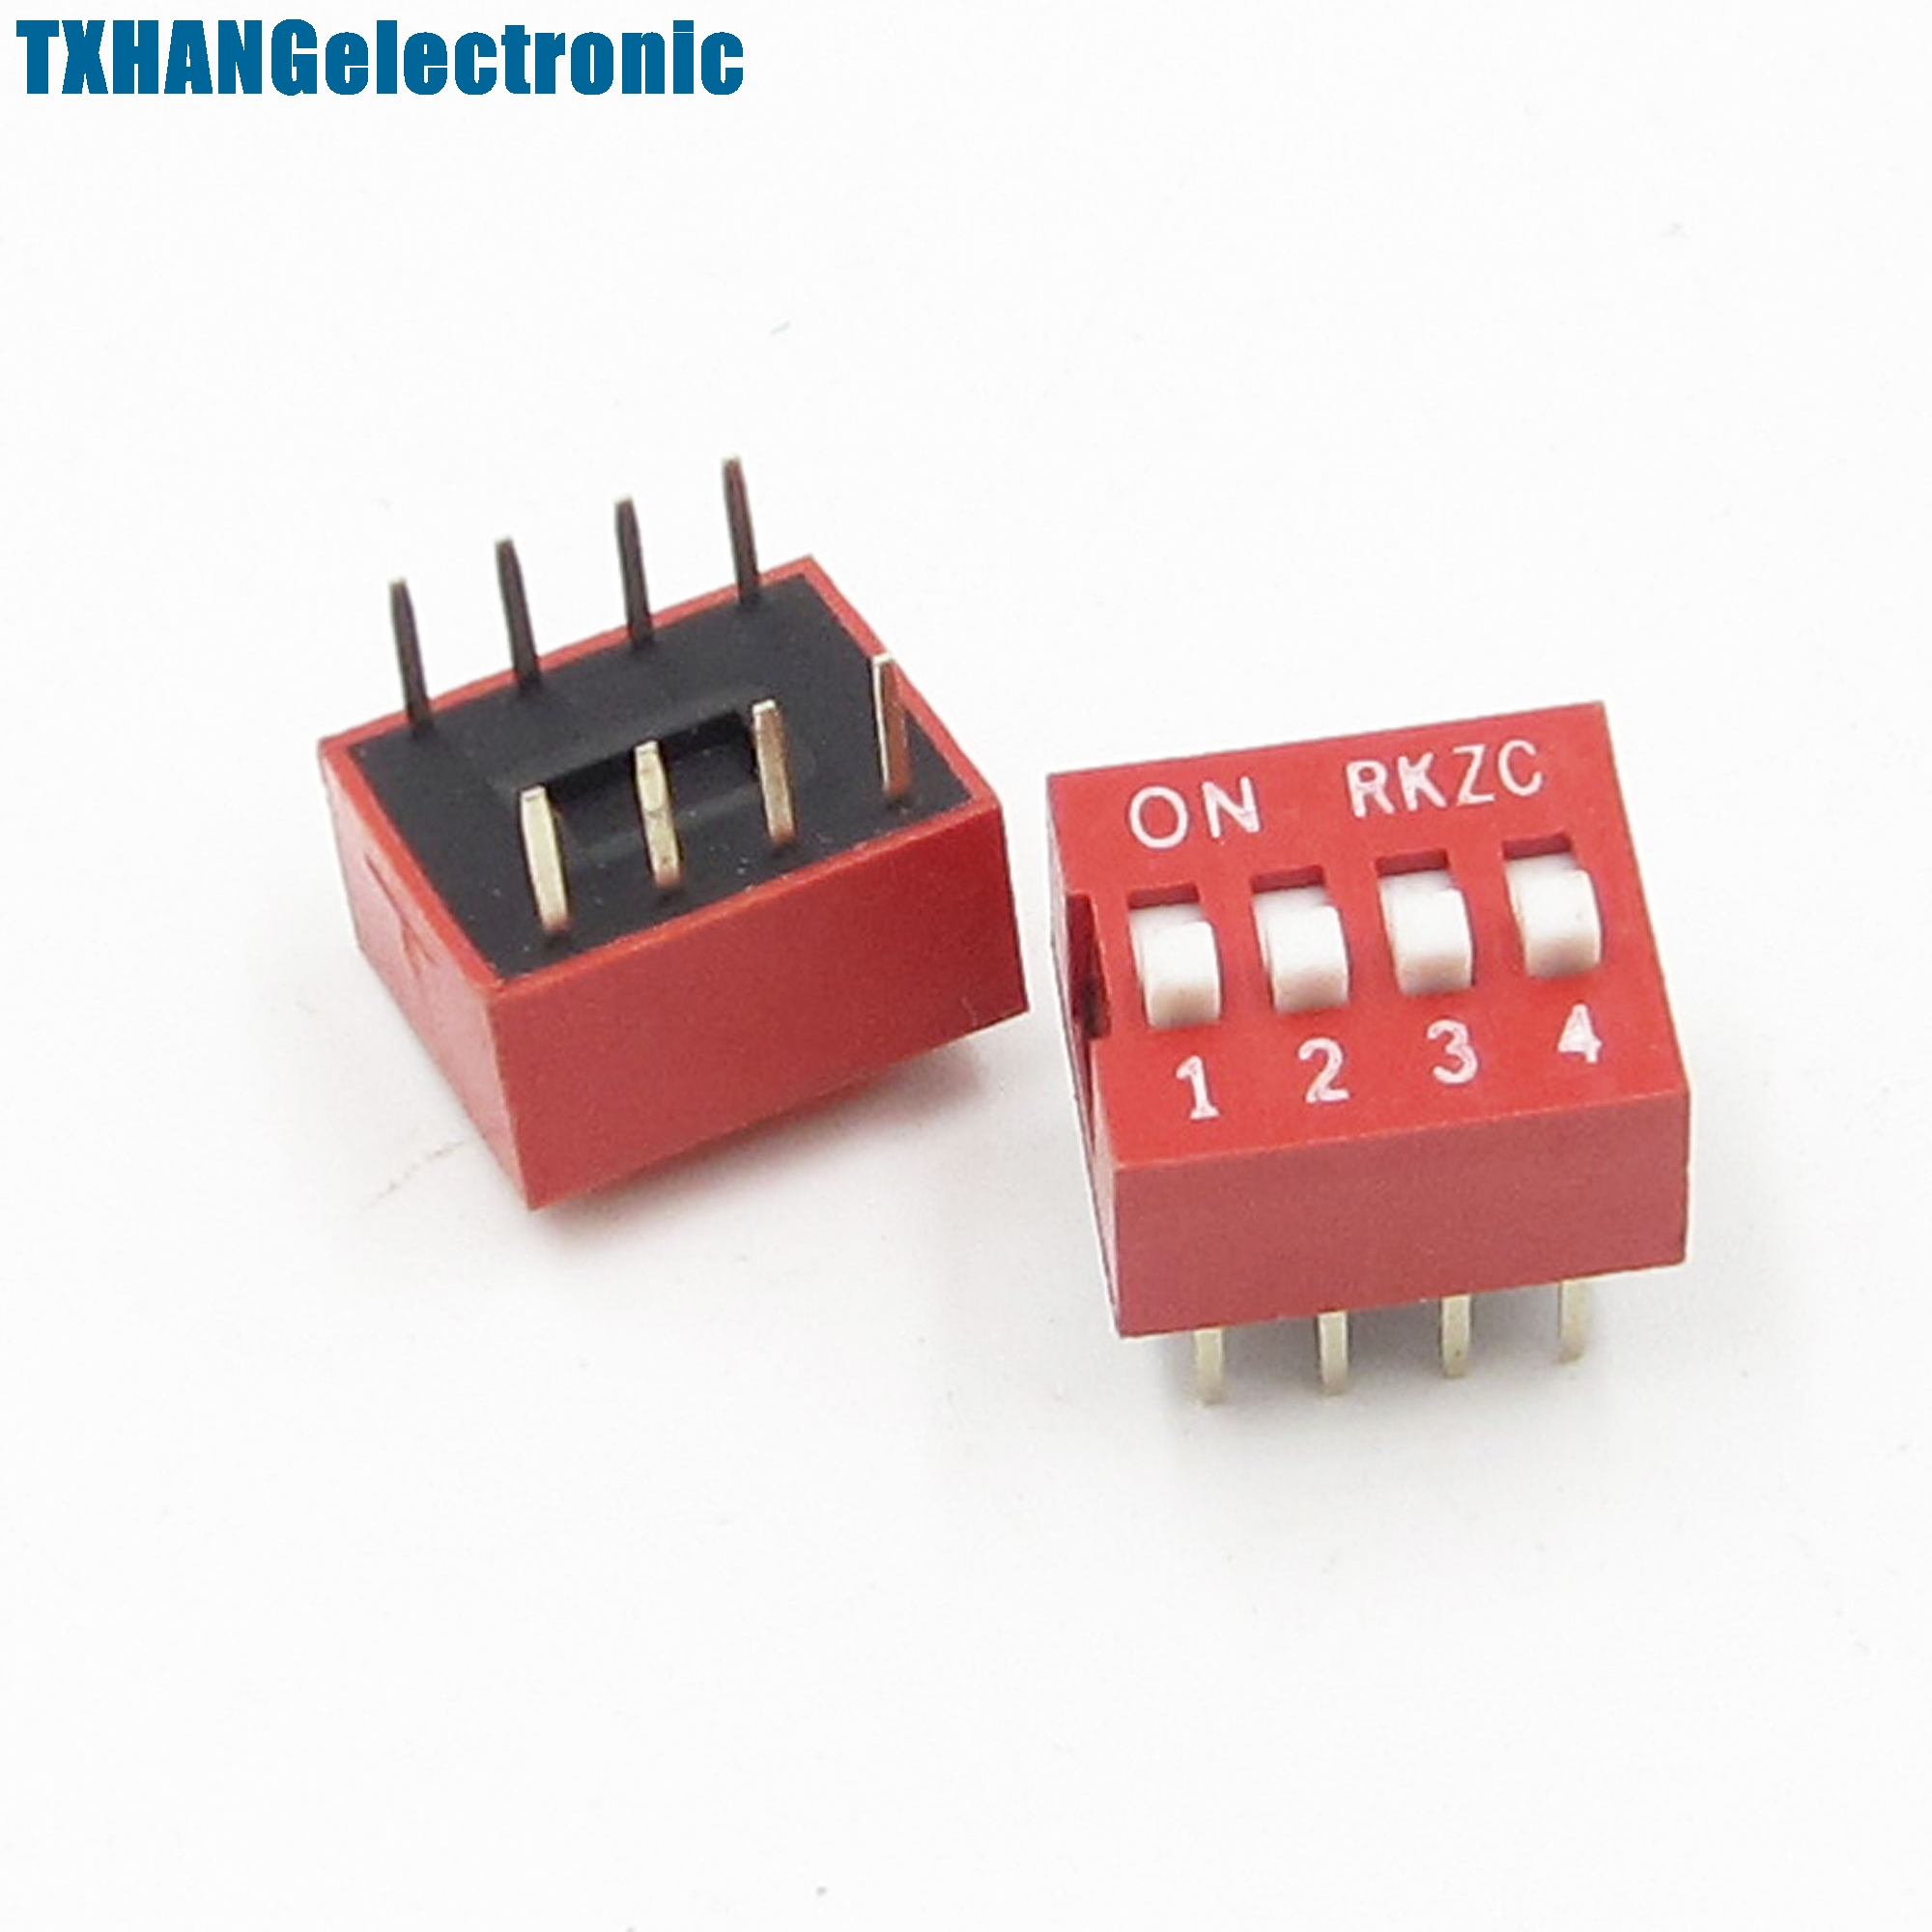 10pcs Slide Type Switch Module 2.54mm 5-bit 5 Position Way Dip Red Pitch Active Components Electronic Components & Supplies